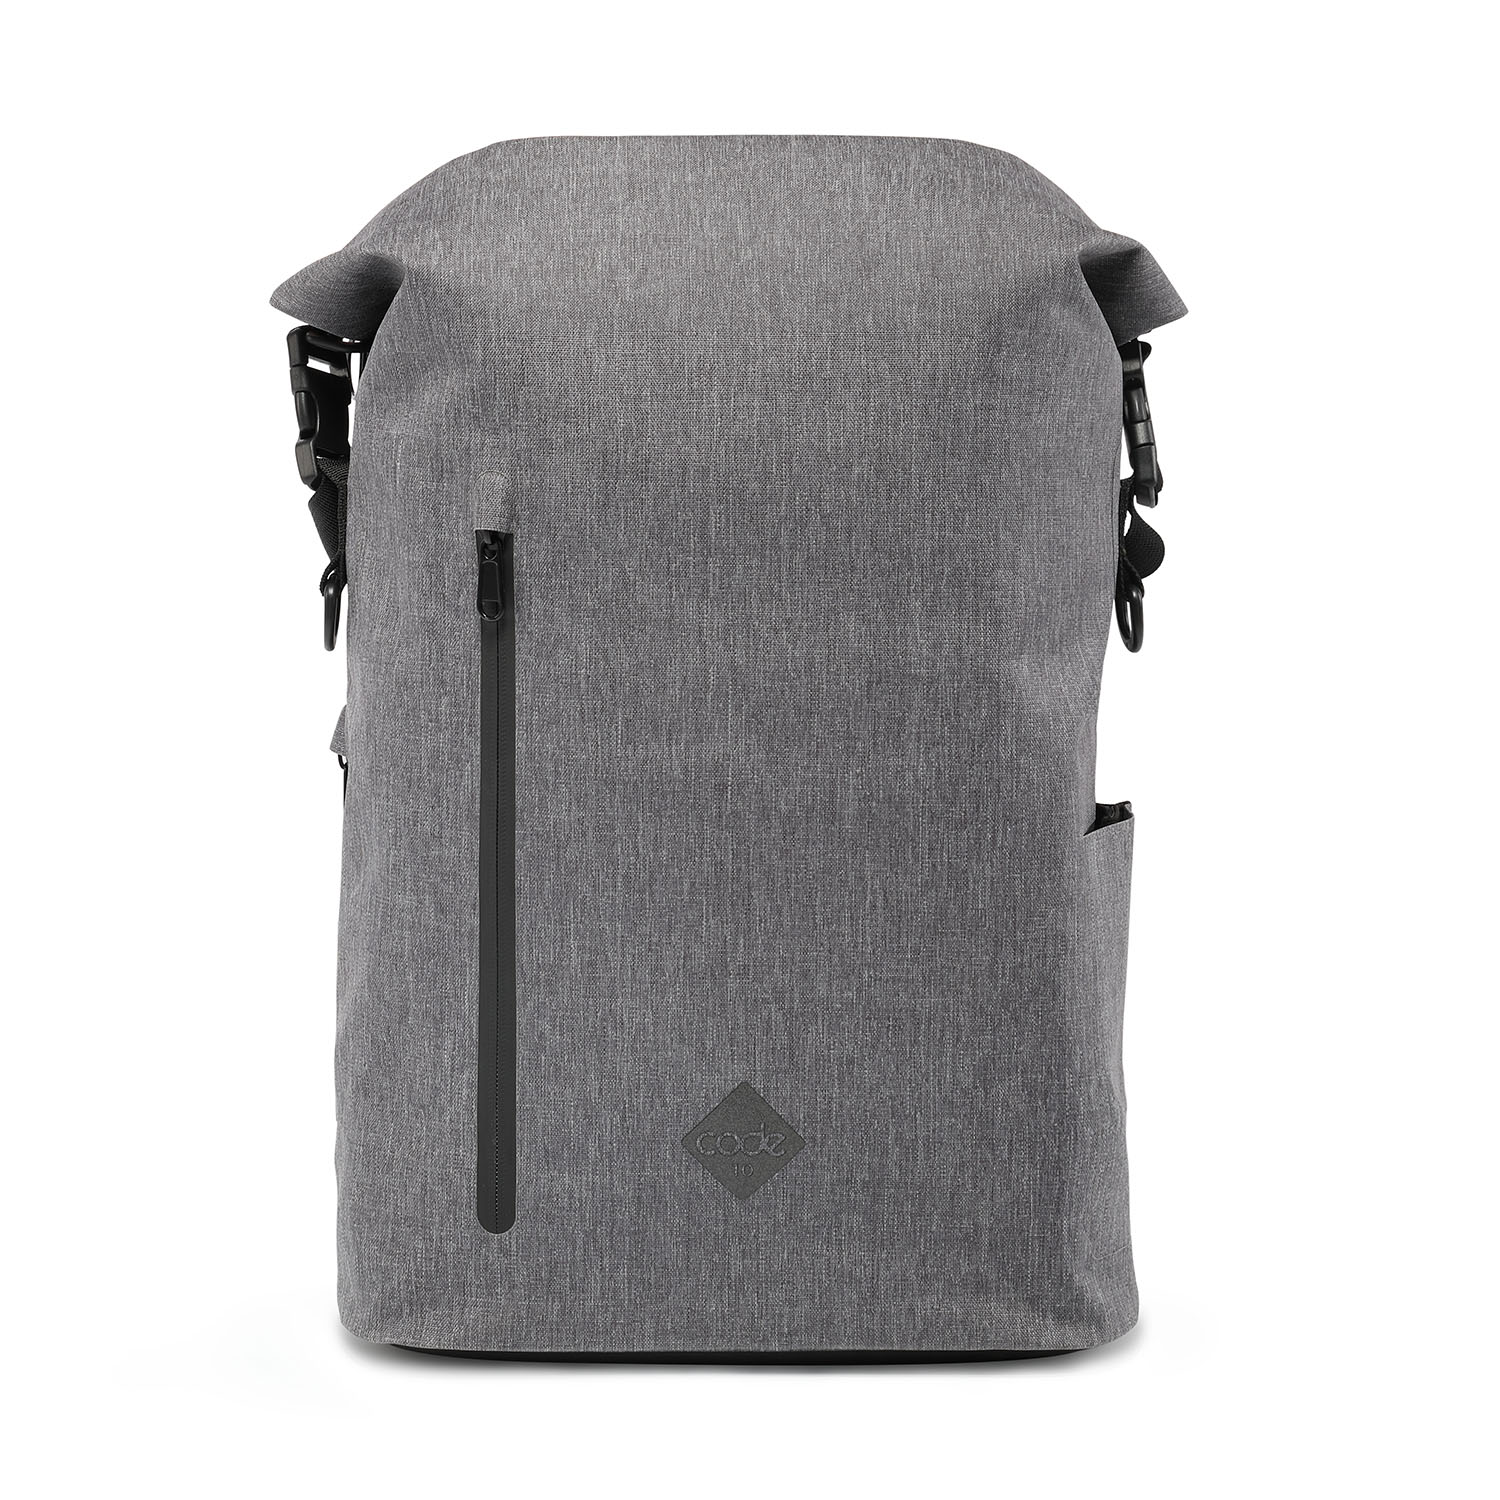 Code 10 – The world s most versatile waterproof bags a9b8dfd880